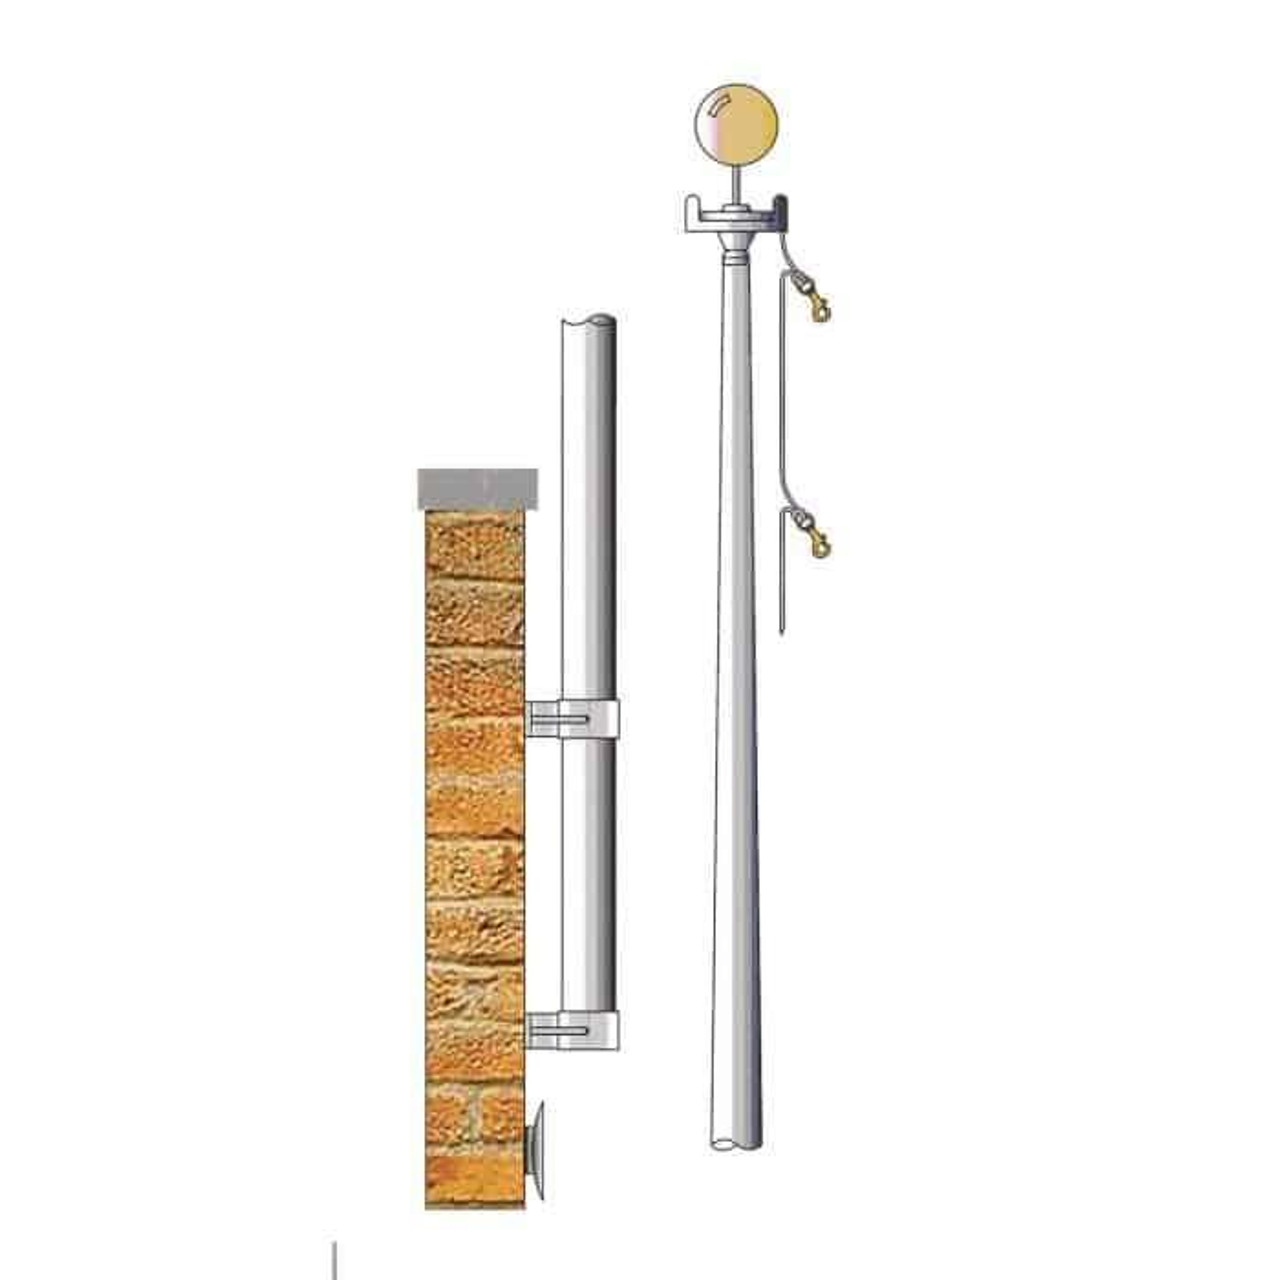 25 Vertical Wall Mounted Flagpole EVWS25